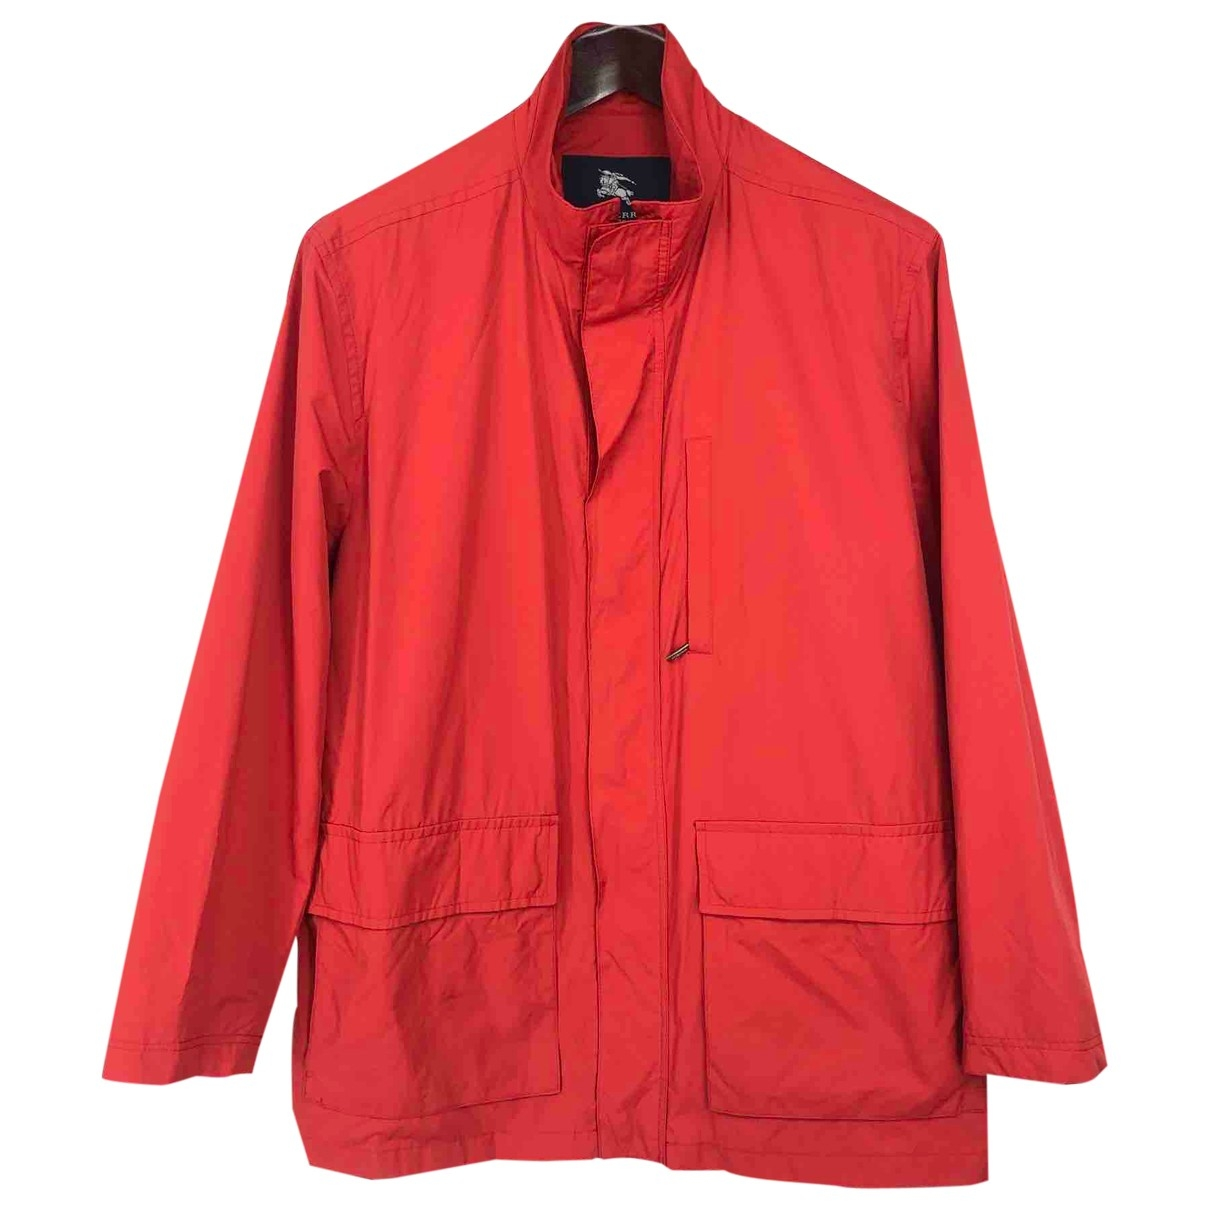 Burberry \N Red Cotton jacket  for Men L International